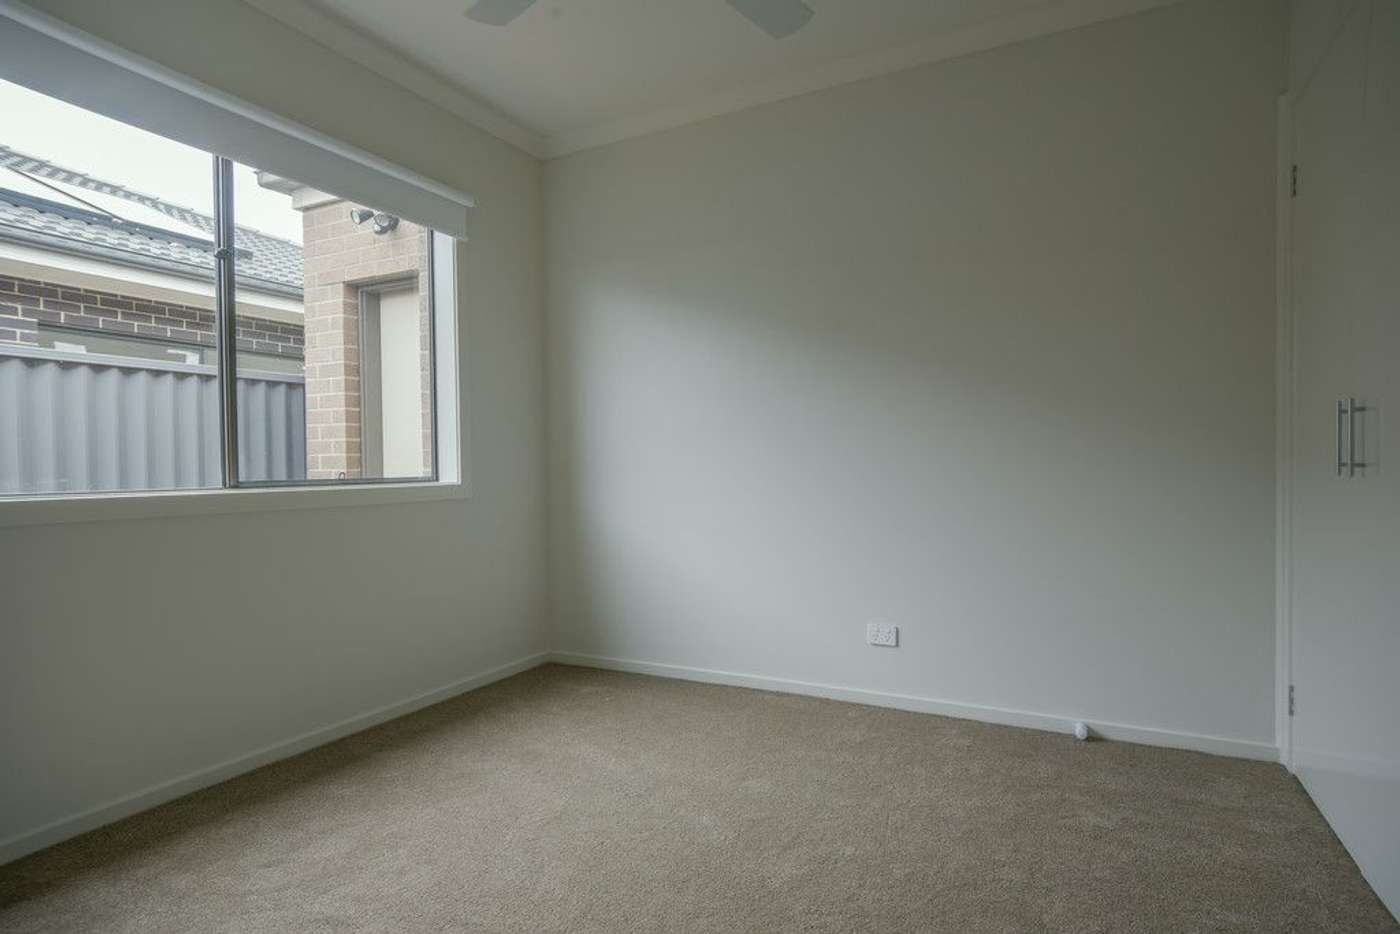 Seventh view of Homely house listing, 22 Wexford Street, Alfredton VIC 3350